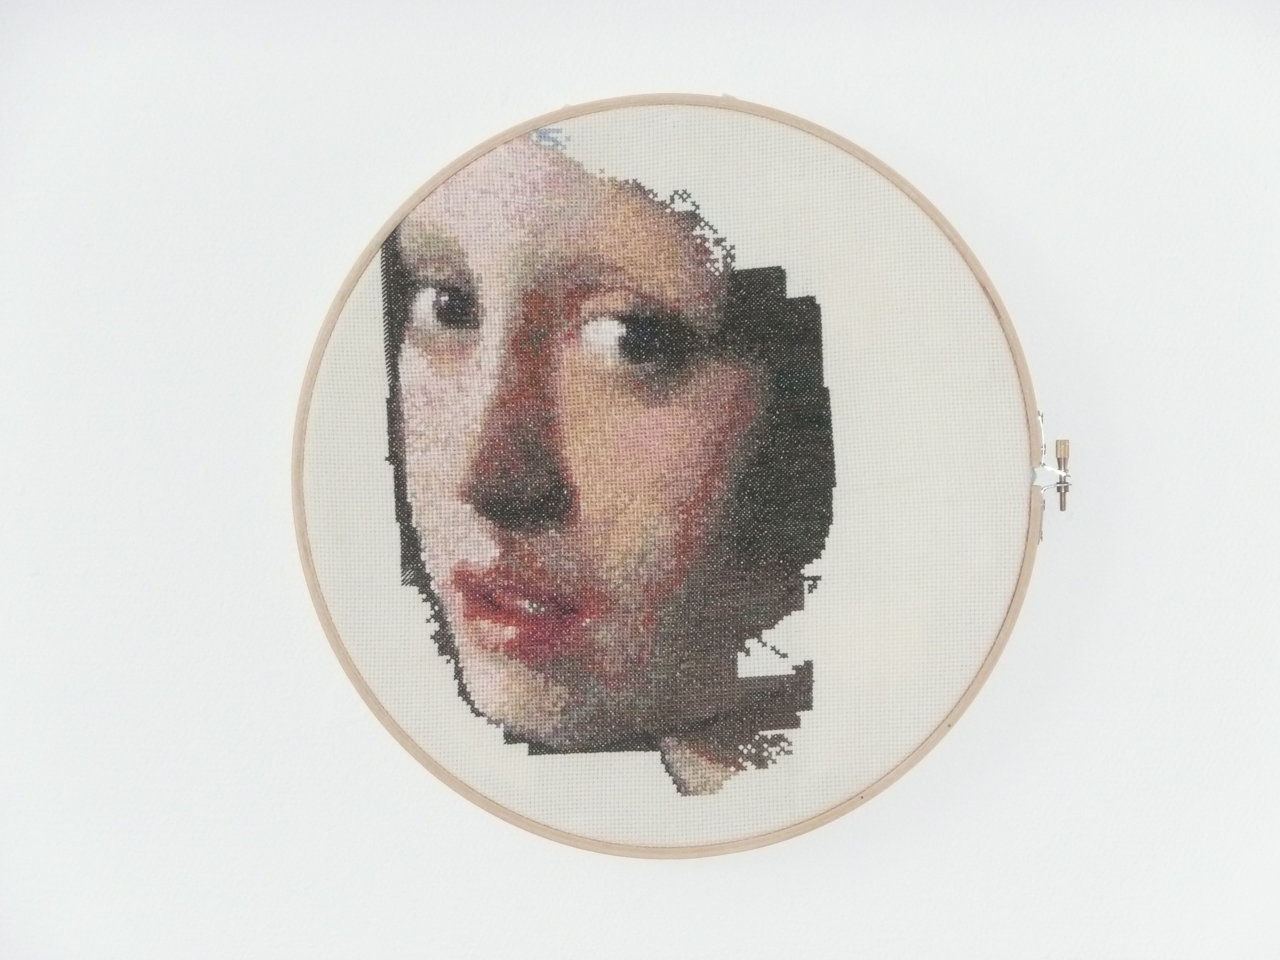 girl_with_pearl_earing__200_stitches_to_square_inch.jpg